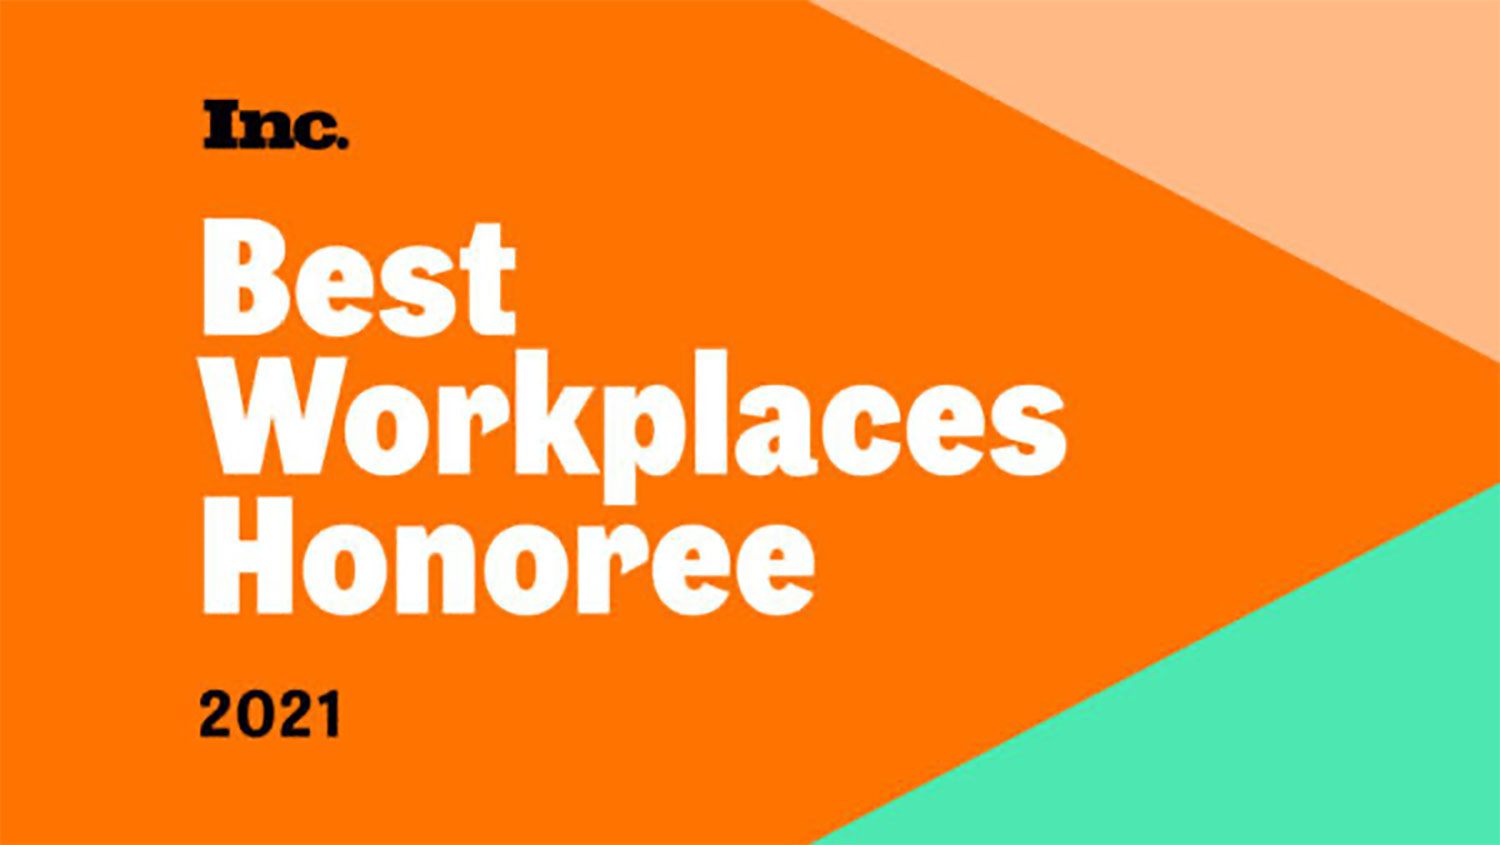 Inc's Best Workplaces of 2021